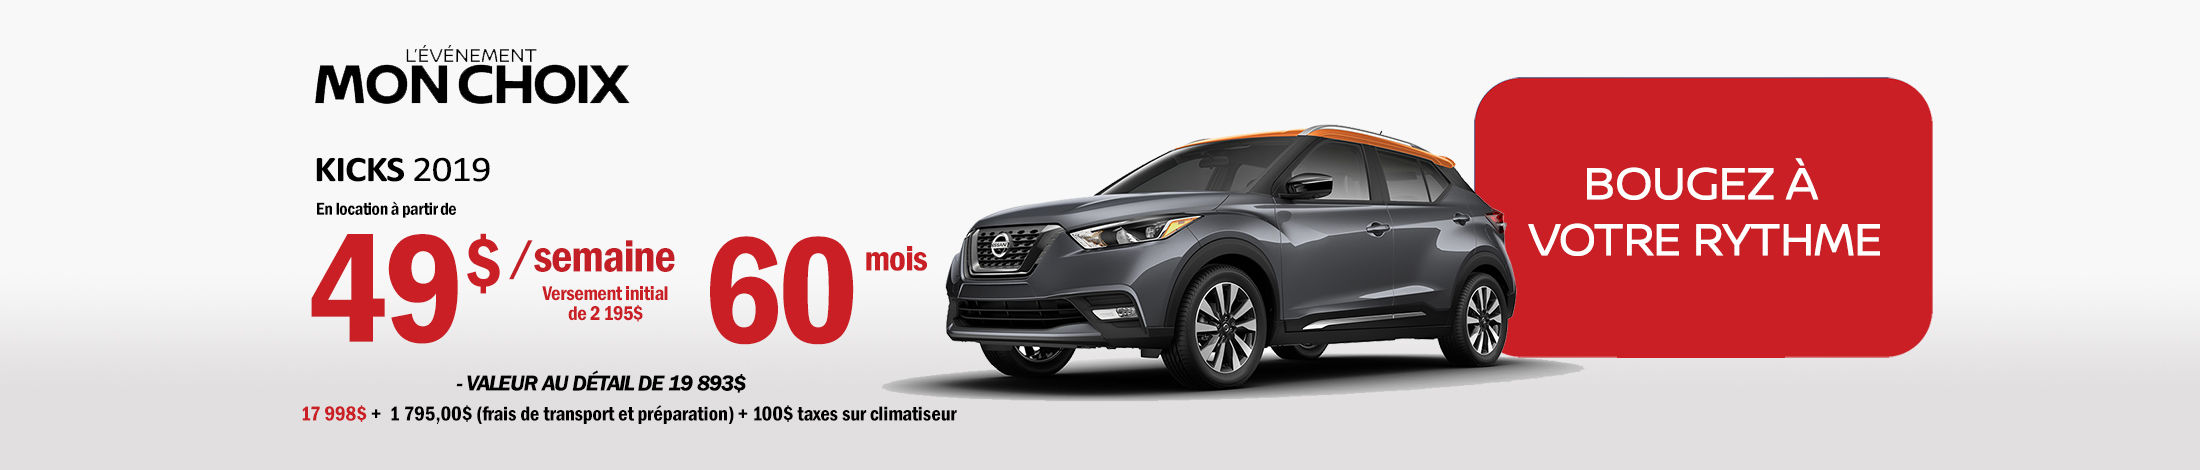 Nissan Kicks promotion banner AVRIL